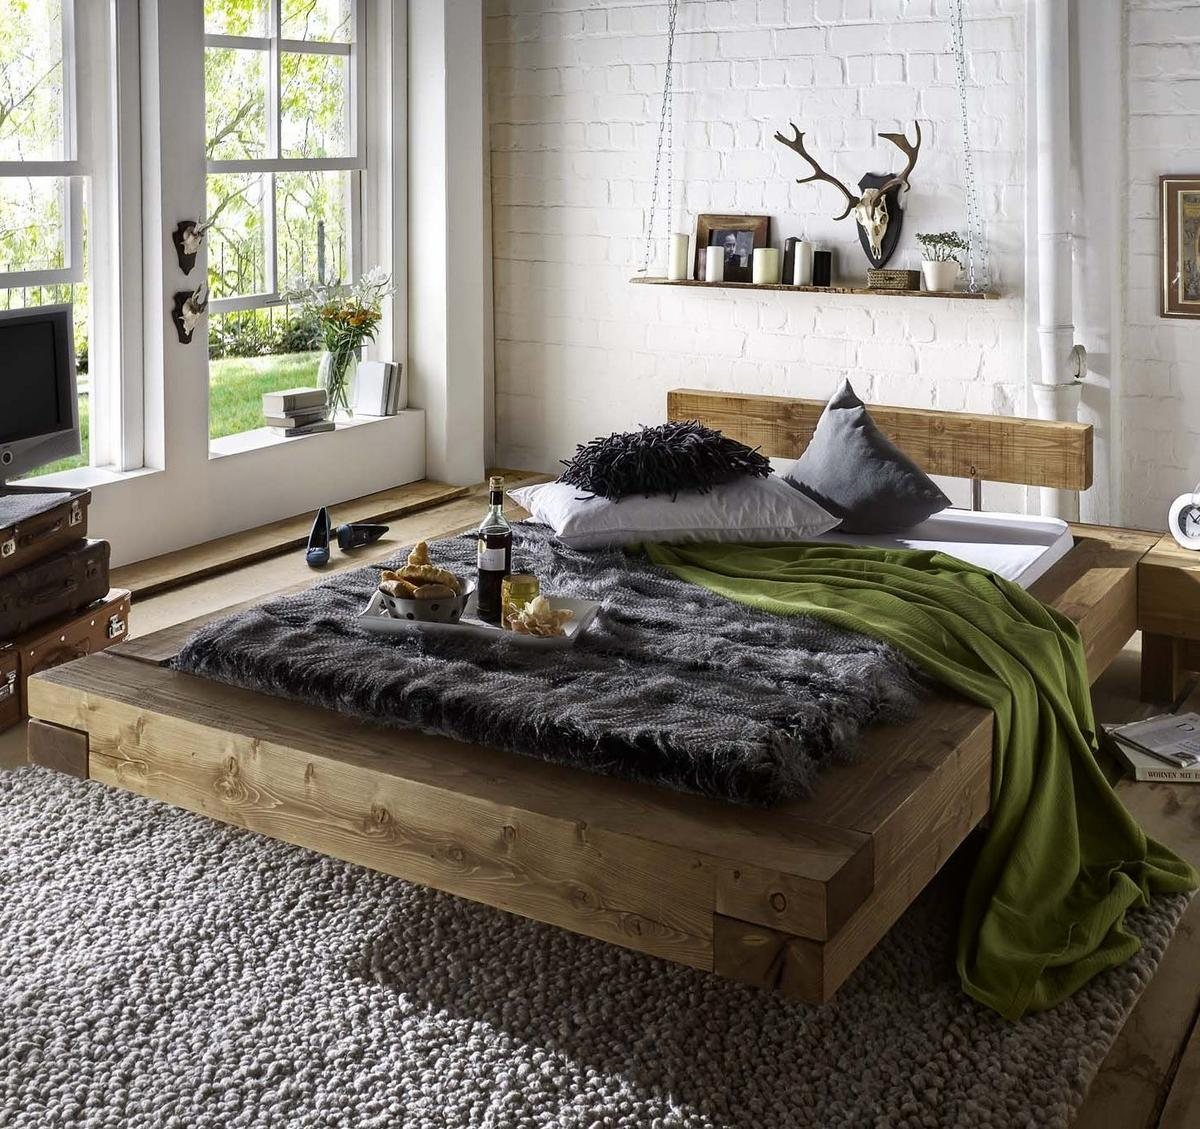 holzbett rustikal. Black Bedroom Furniture Sets. Home Design Ideas